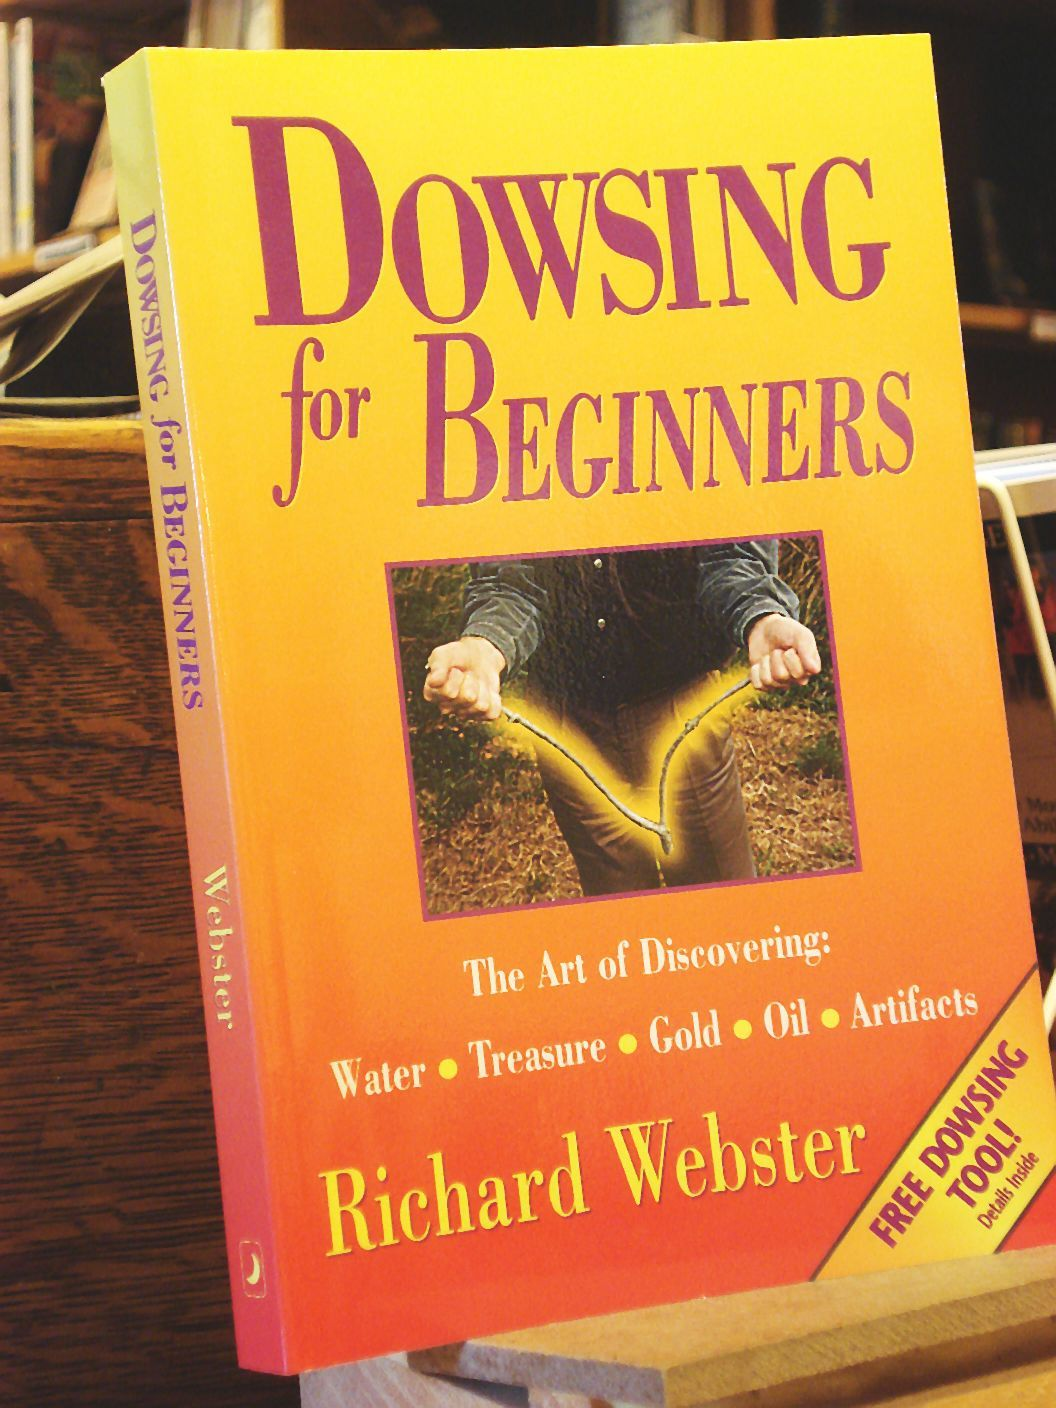 9781567188028 - Dowsing for Beginners How to Find Water